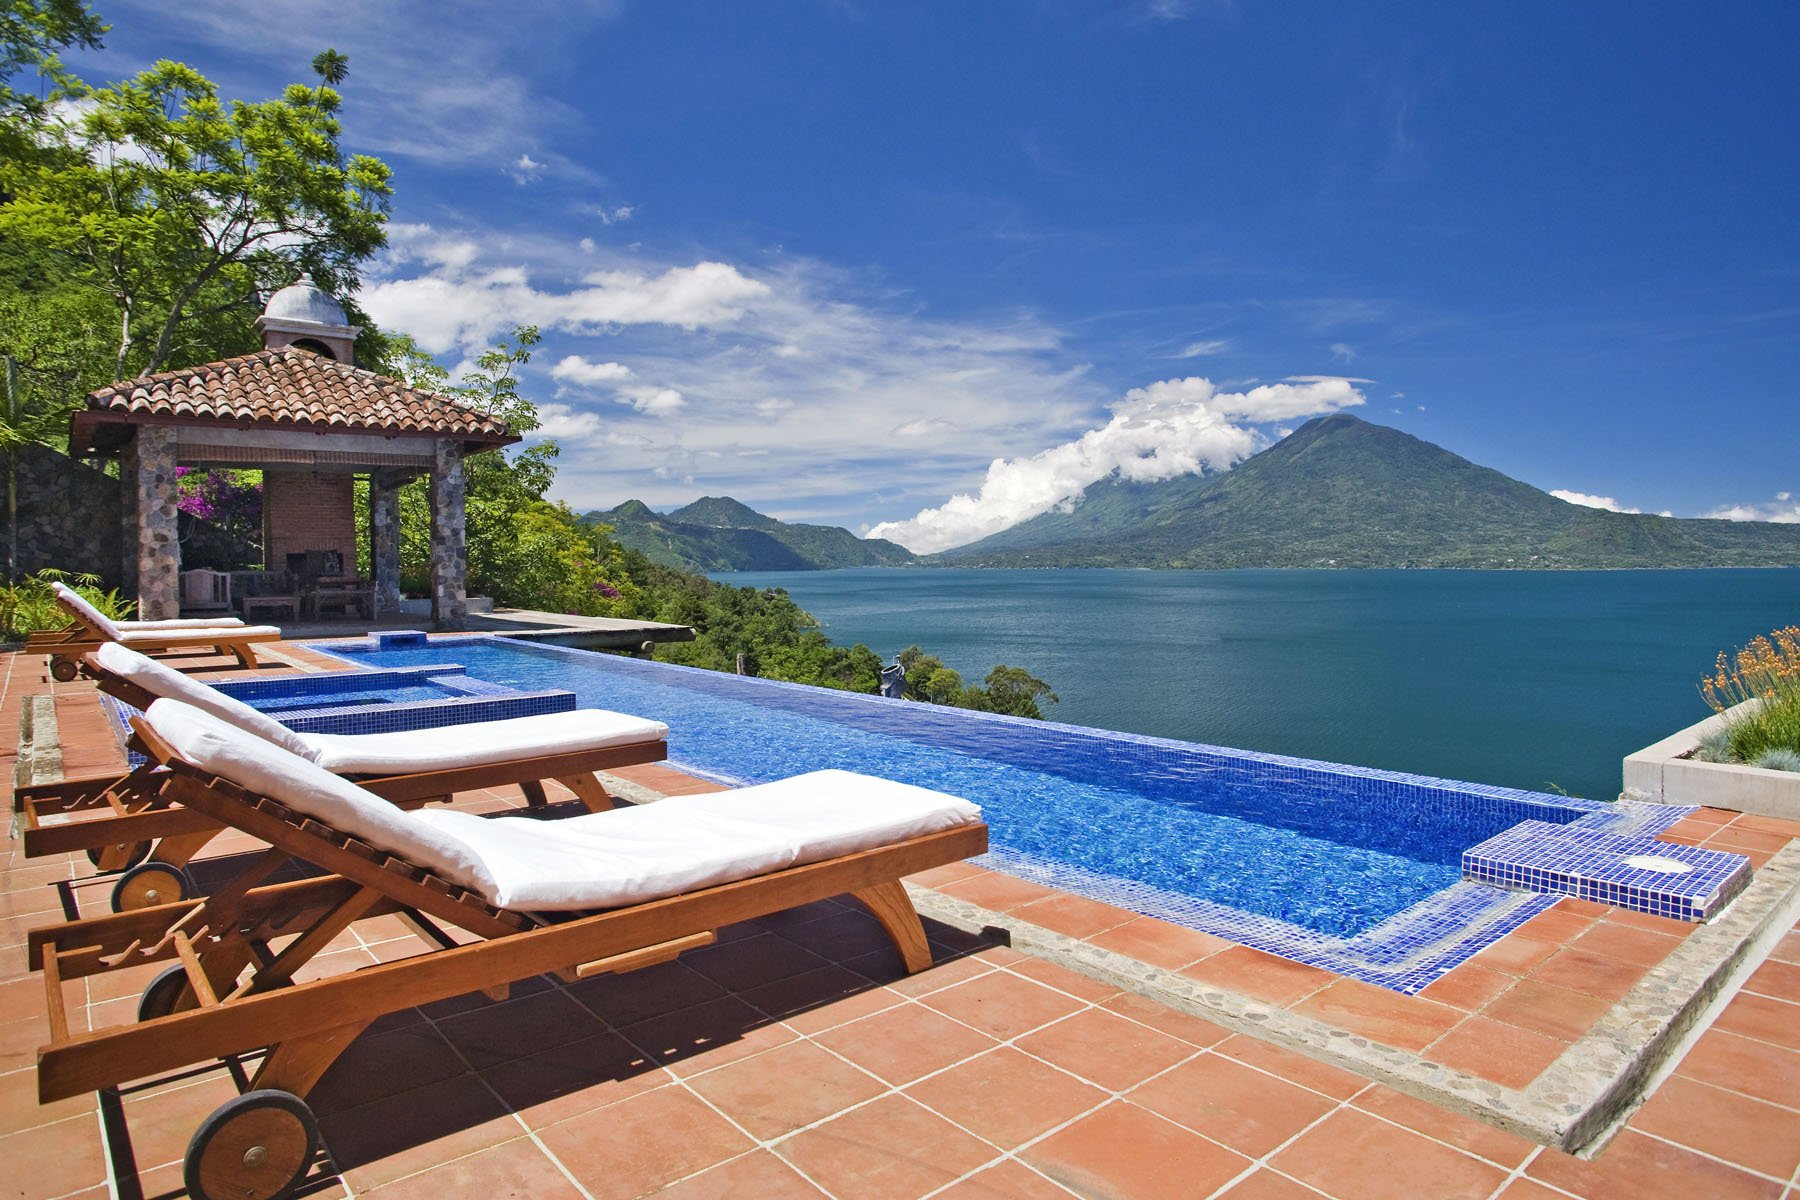 Casa Palopo on lake Atitlan. Pictured is the infinity pool at the hotel villas. (credit: Al Argueta)